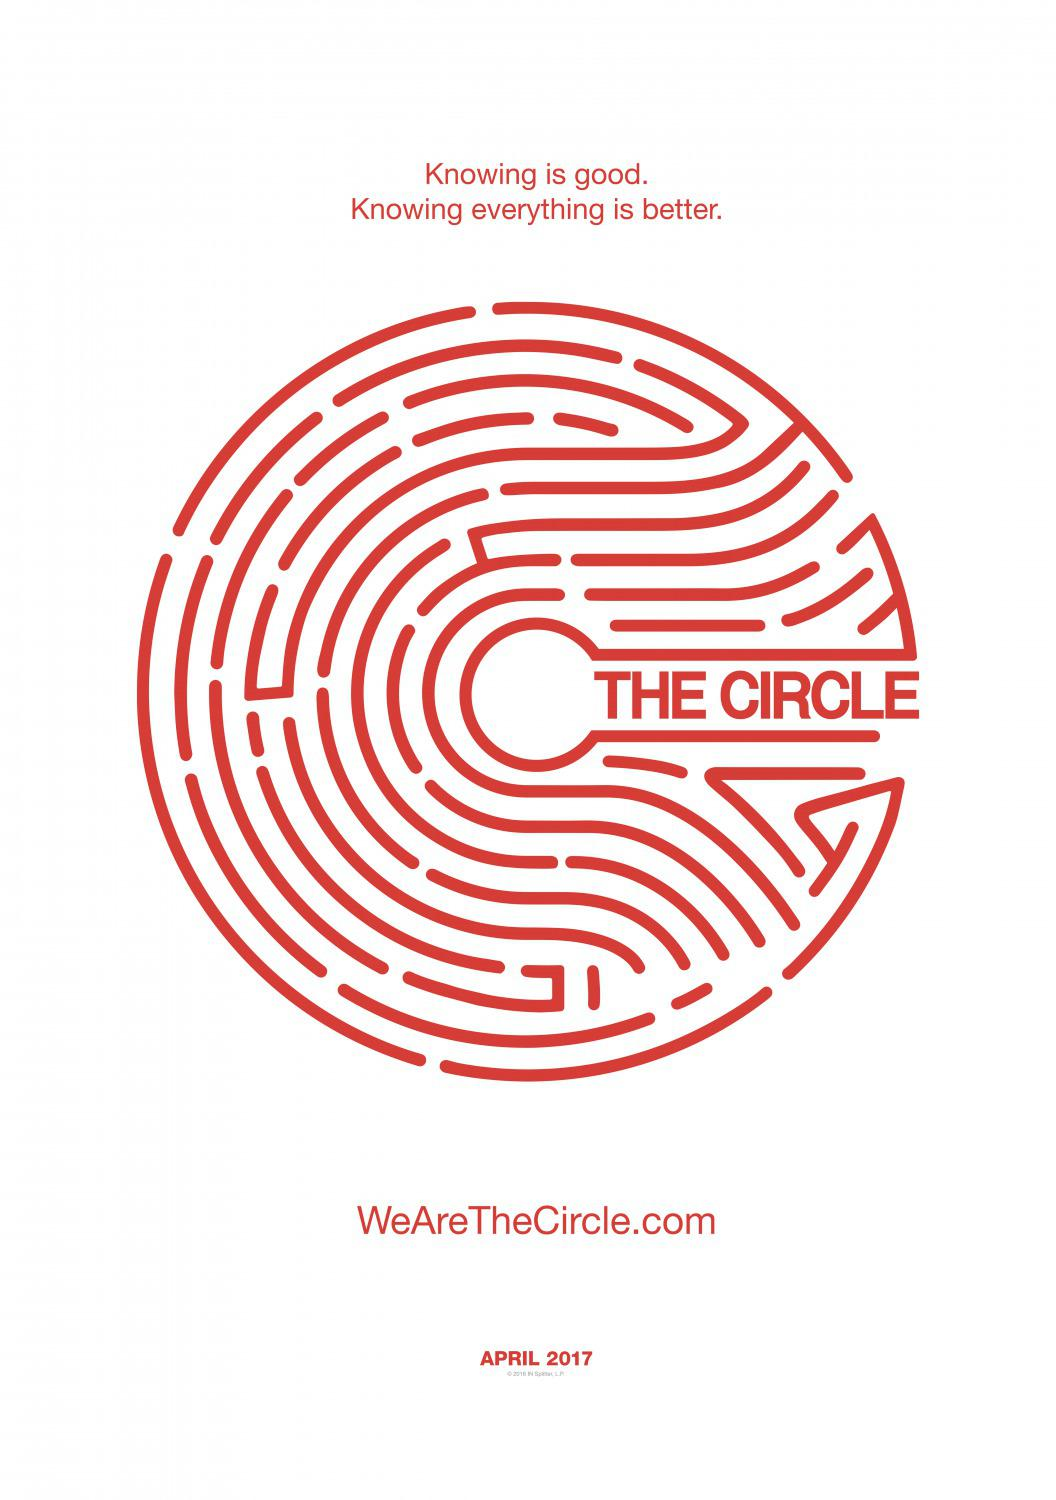 The Circle - Emma Watson - Tom Hanks - logo